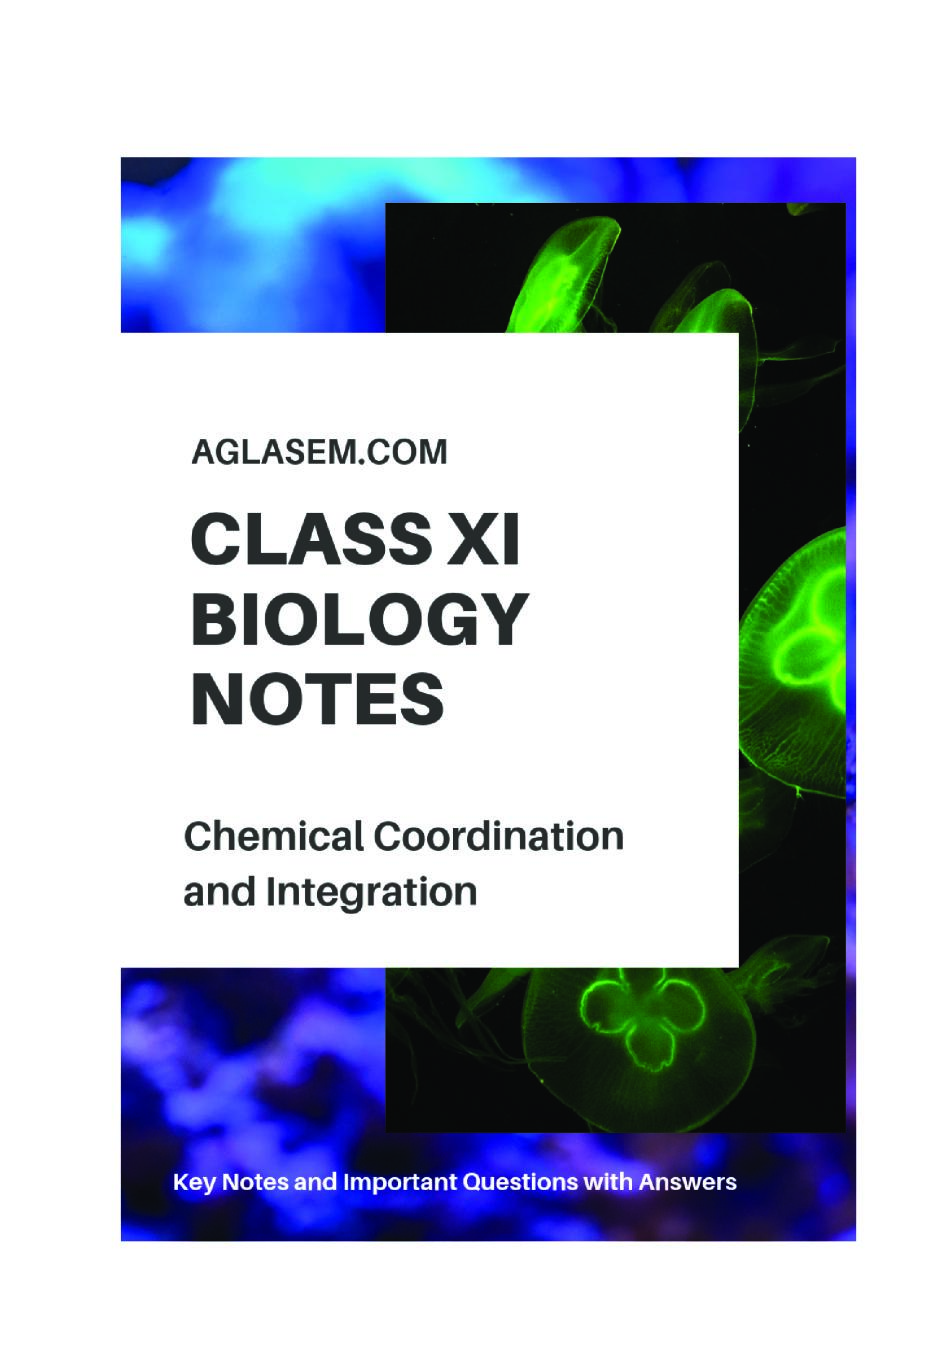 Class 11 Biology Notes for Chemical Coordination and Integration